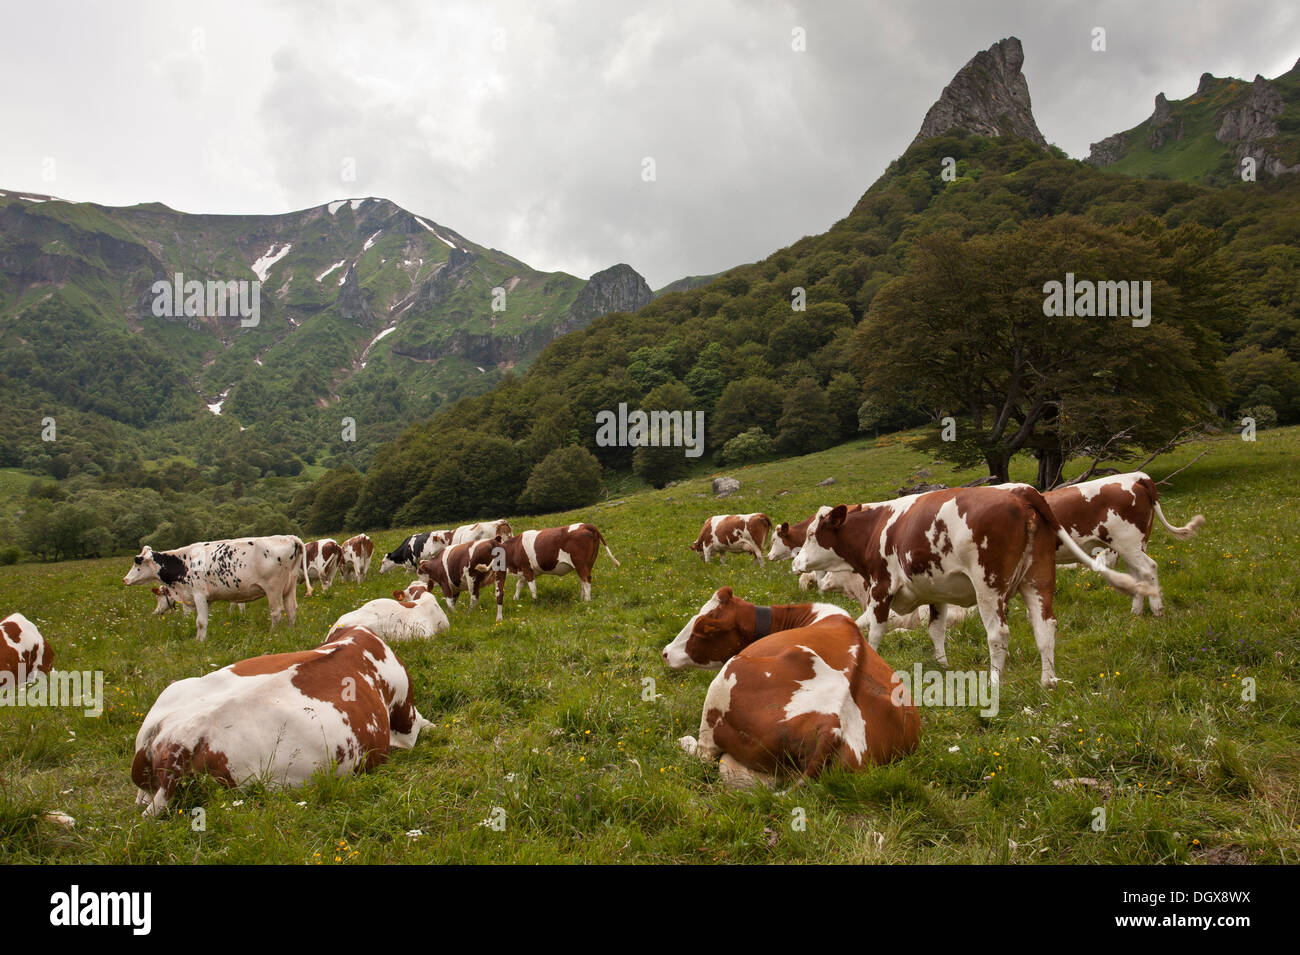 Cattle grazing in high pastures in the Auvergne, Vallée de Chaudefour reserve. France. - Stock Image